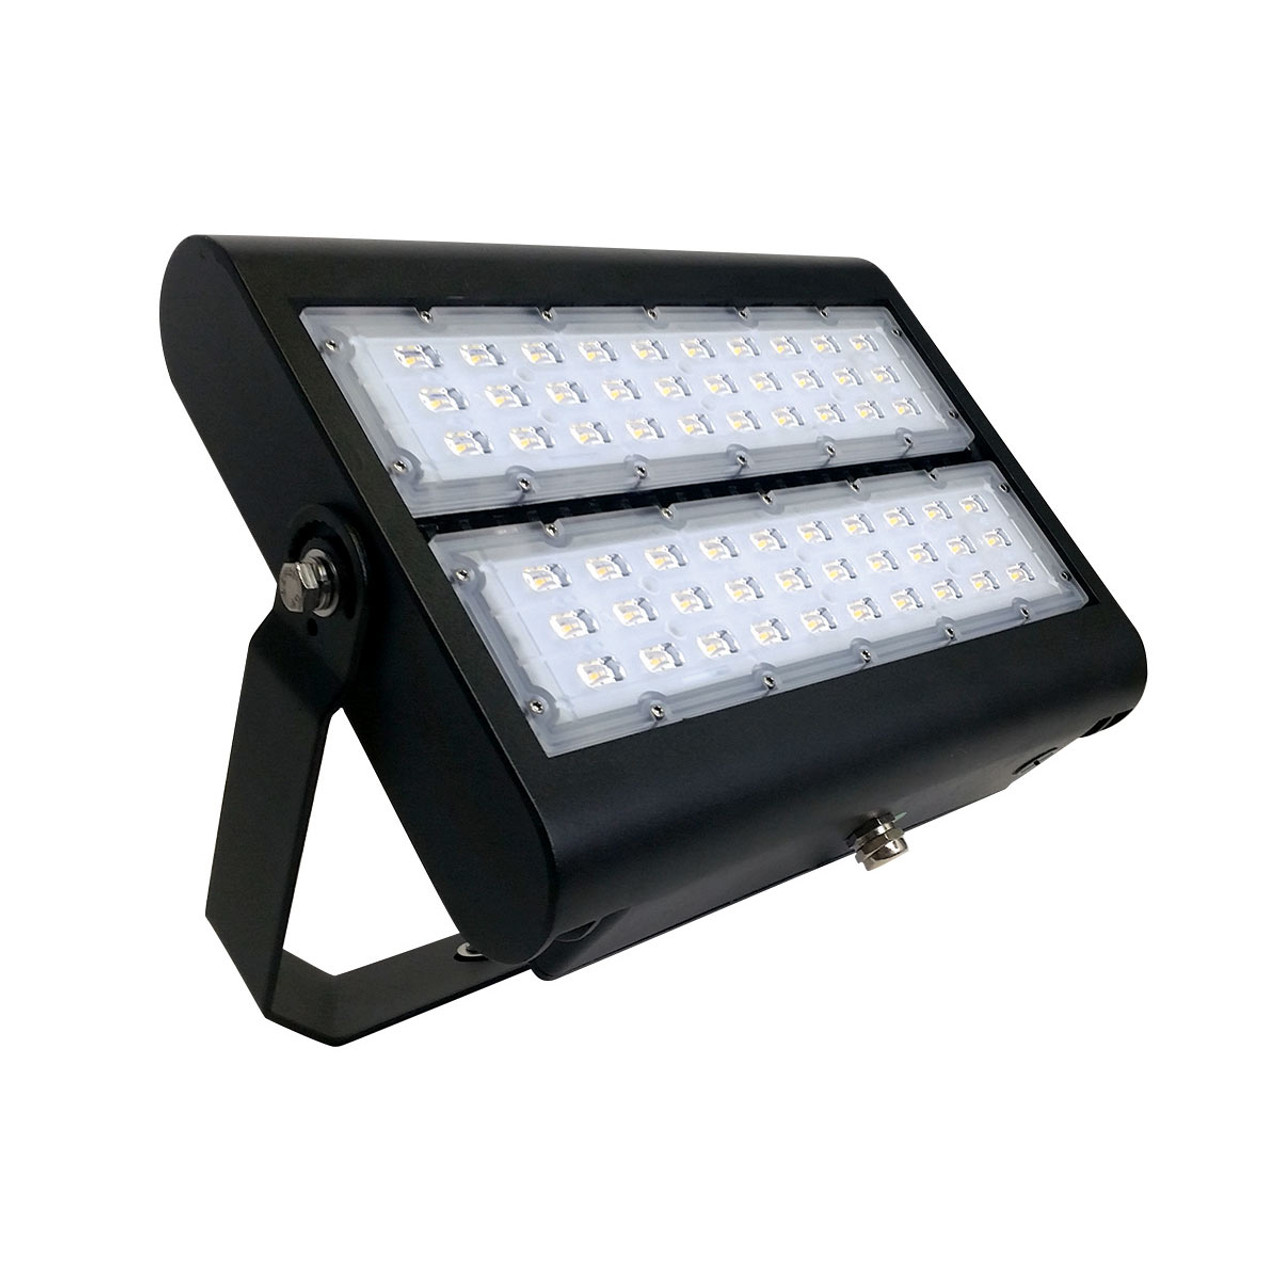 watts power lumen our ac of outdoor fixtures pack led flood tn only light high watt try using lights low need portable powered white voltage dc lighting original wall